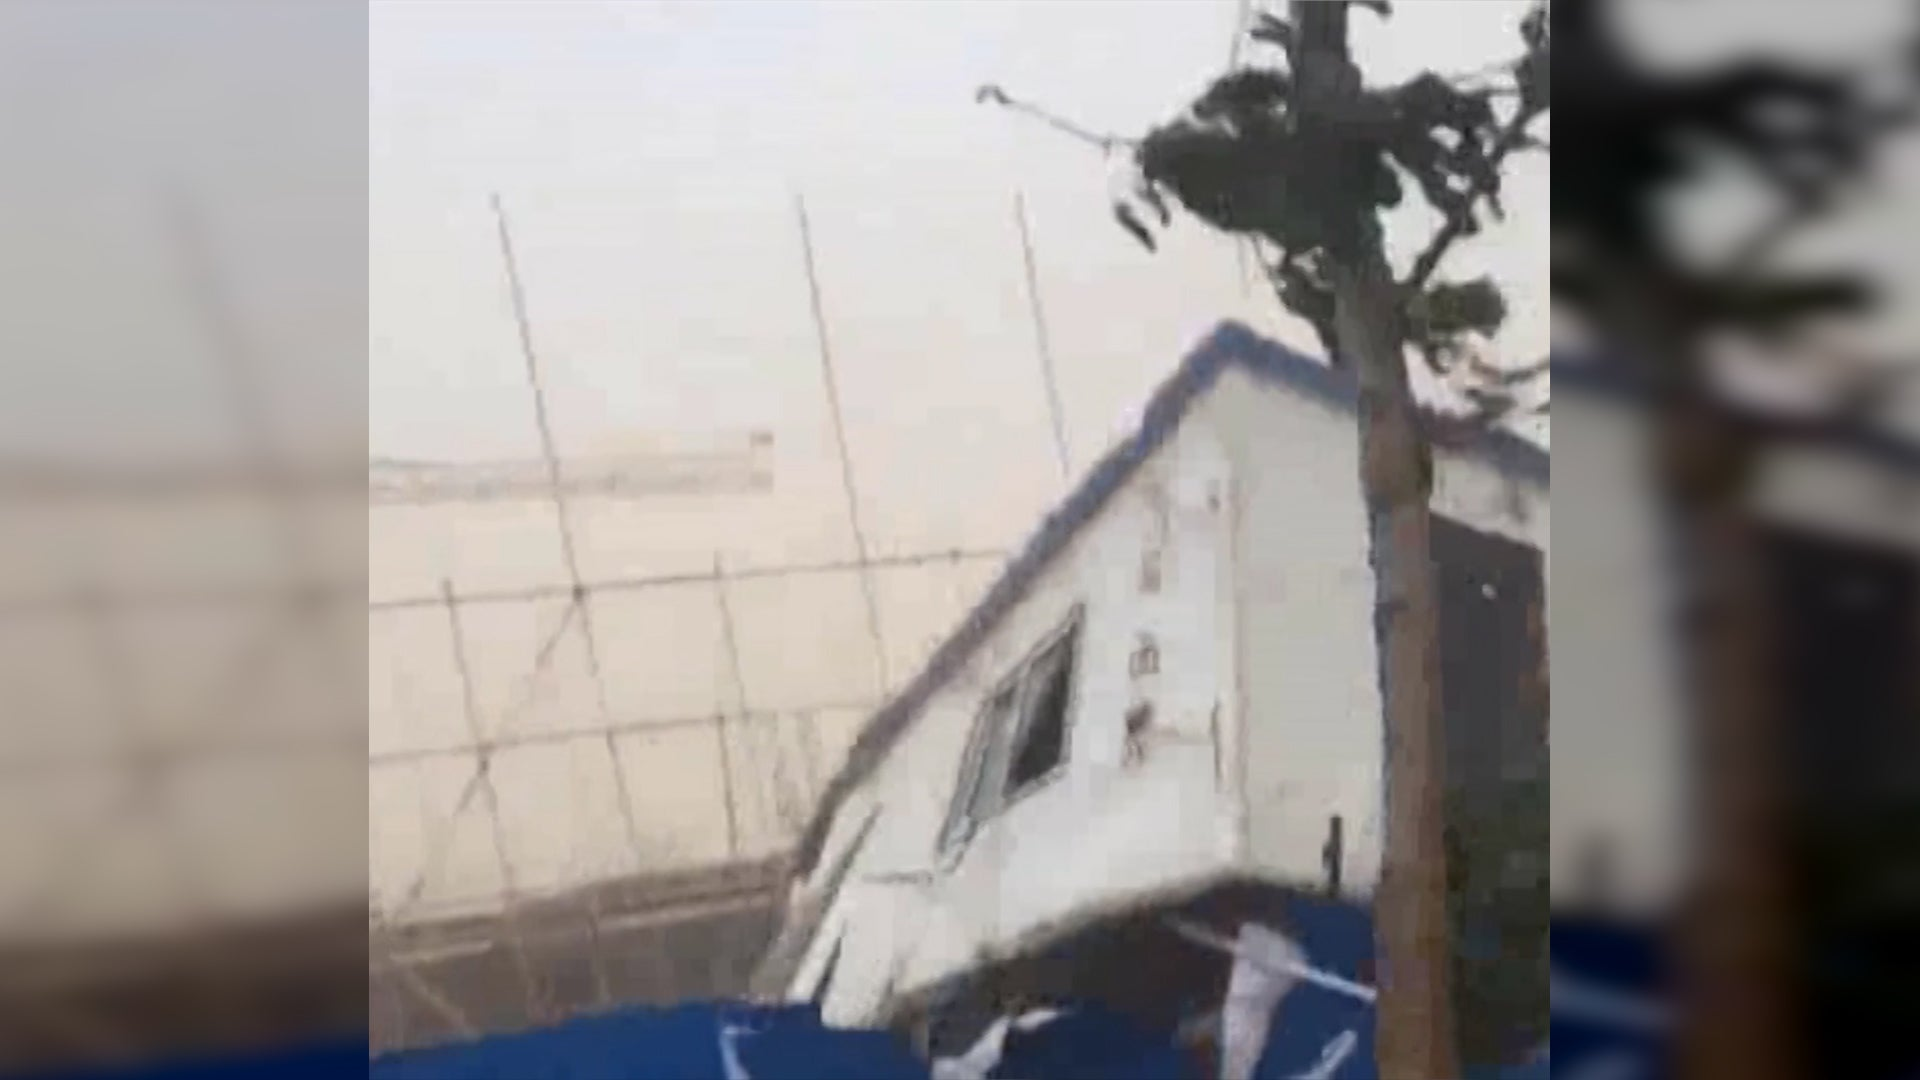 Astonishing Windstorm in China Causes Damage